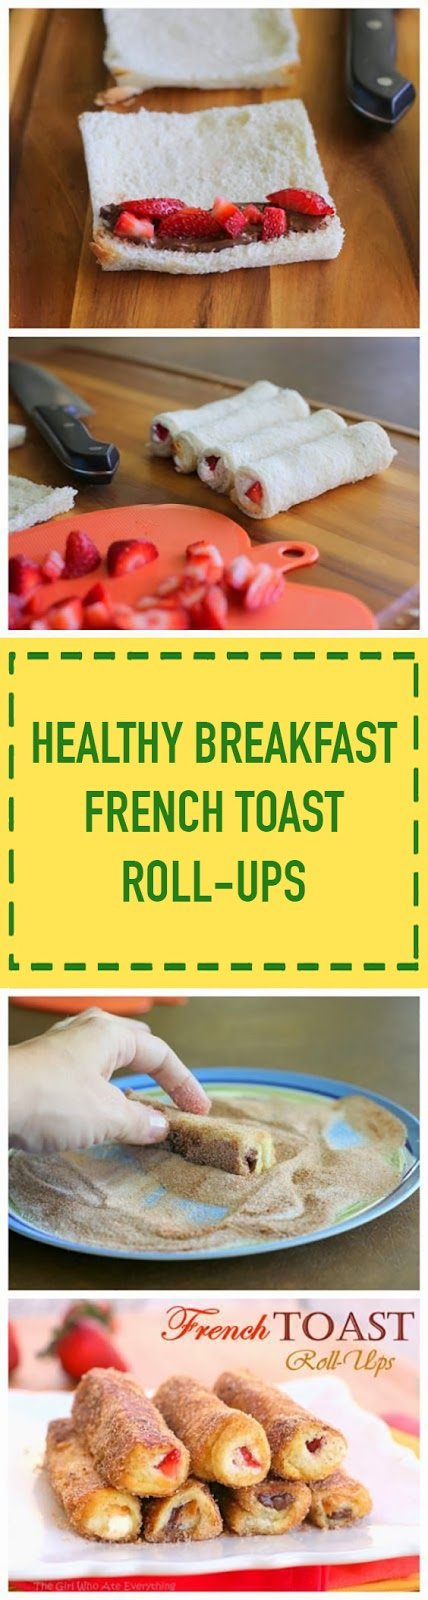 Healthy Breakfast French Toast Roll-Ups